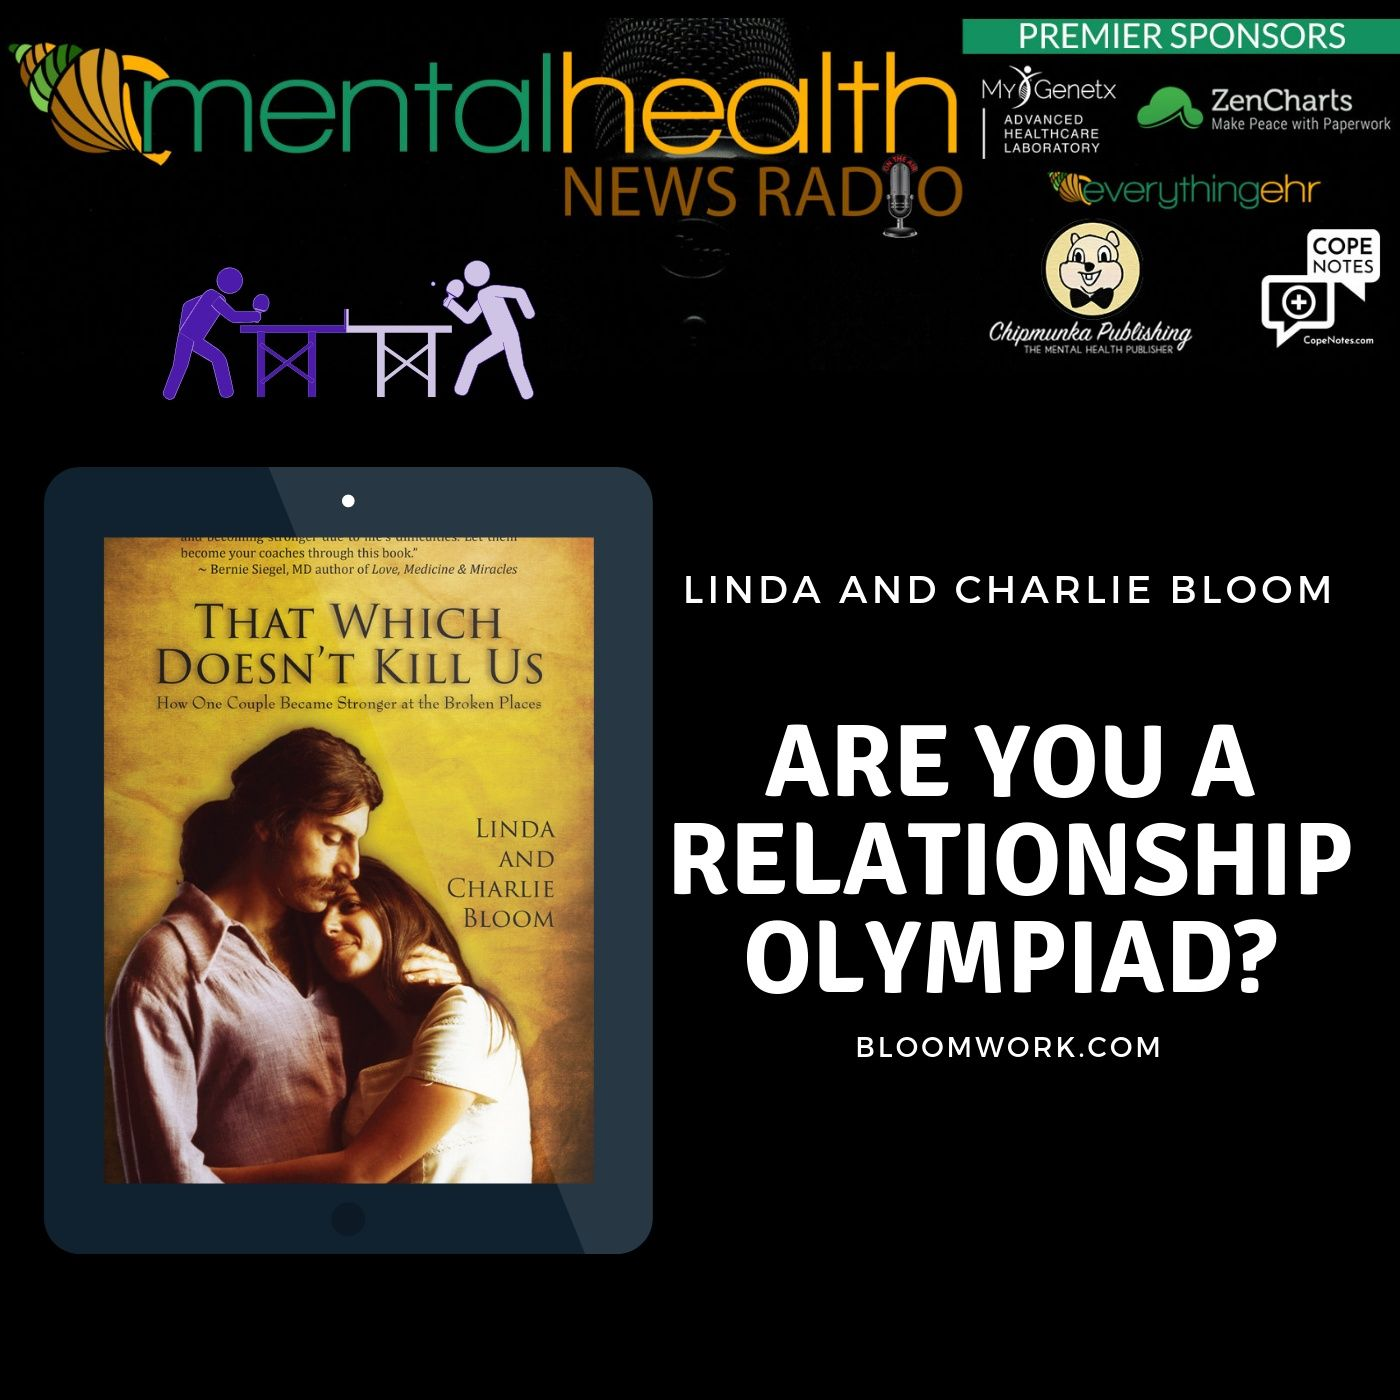 Mental Health News Radio - Are You a Relationship Olympiad? Linda and Charlie Bloom